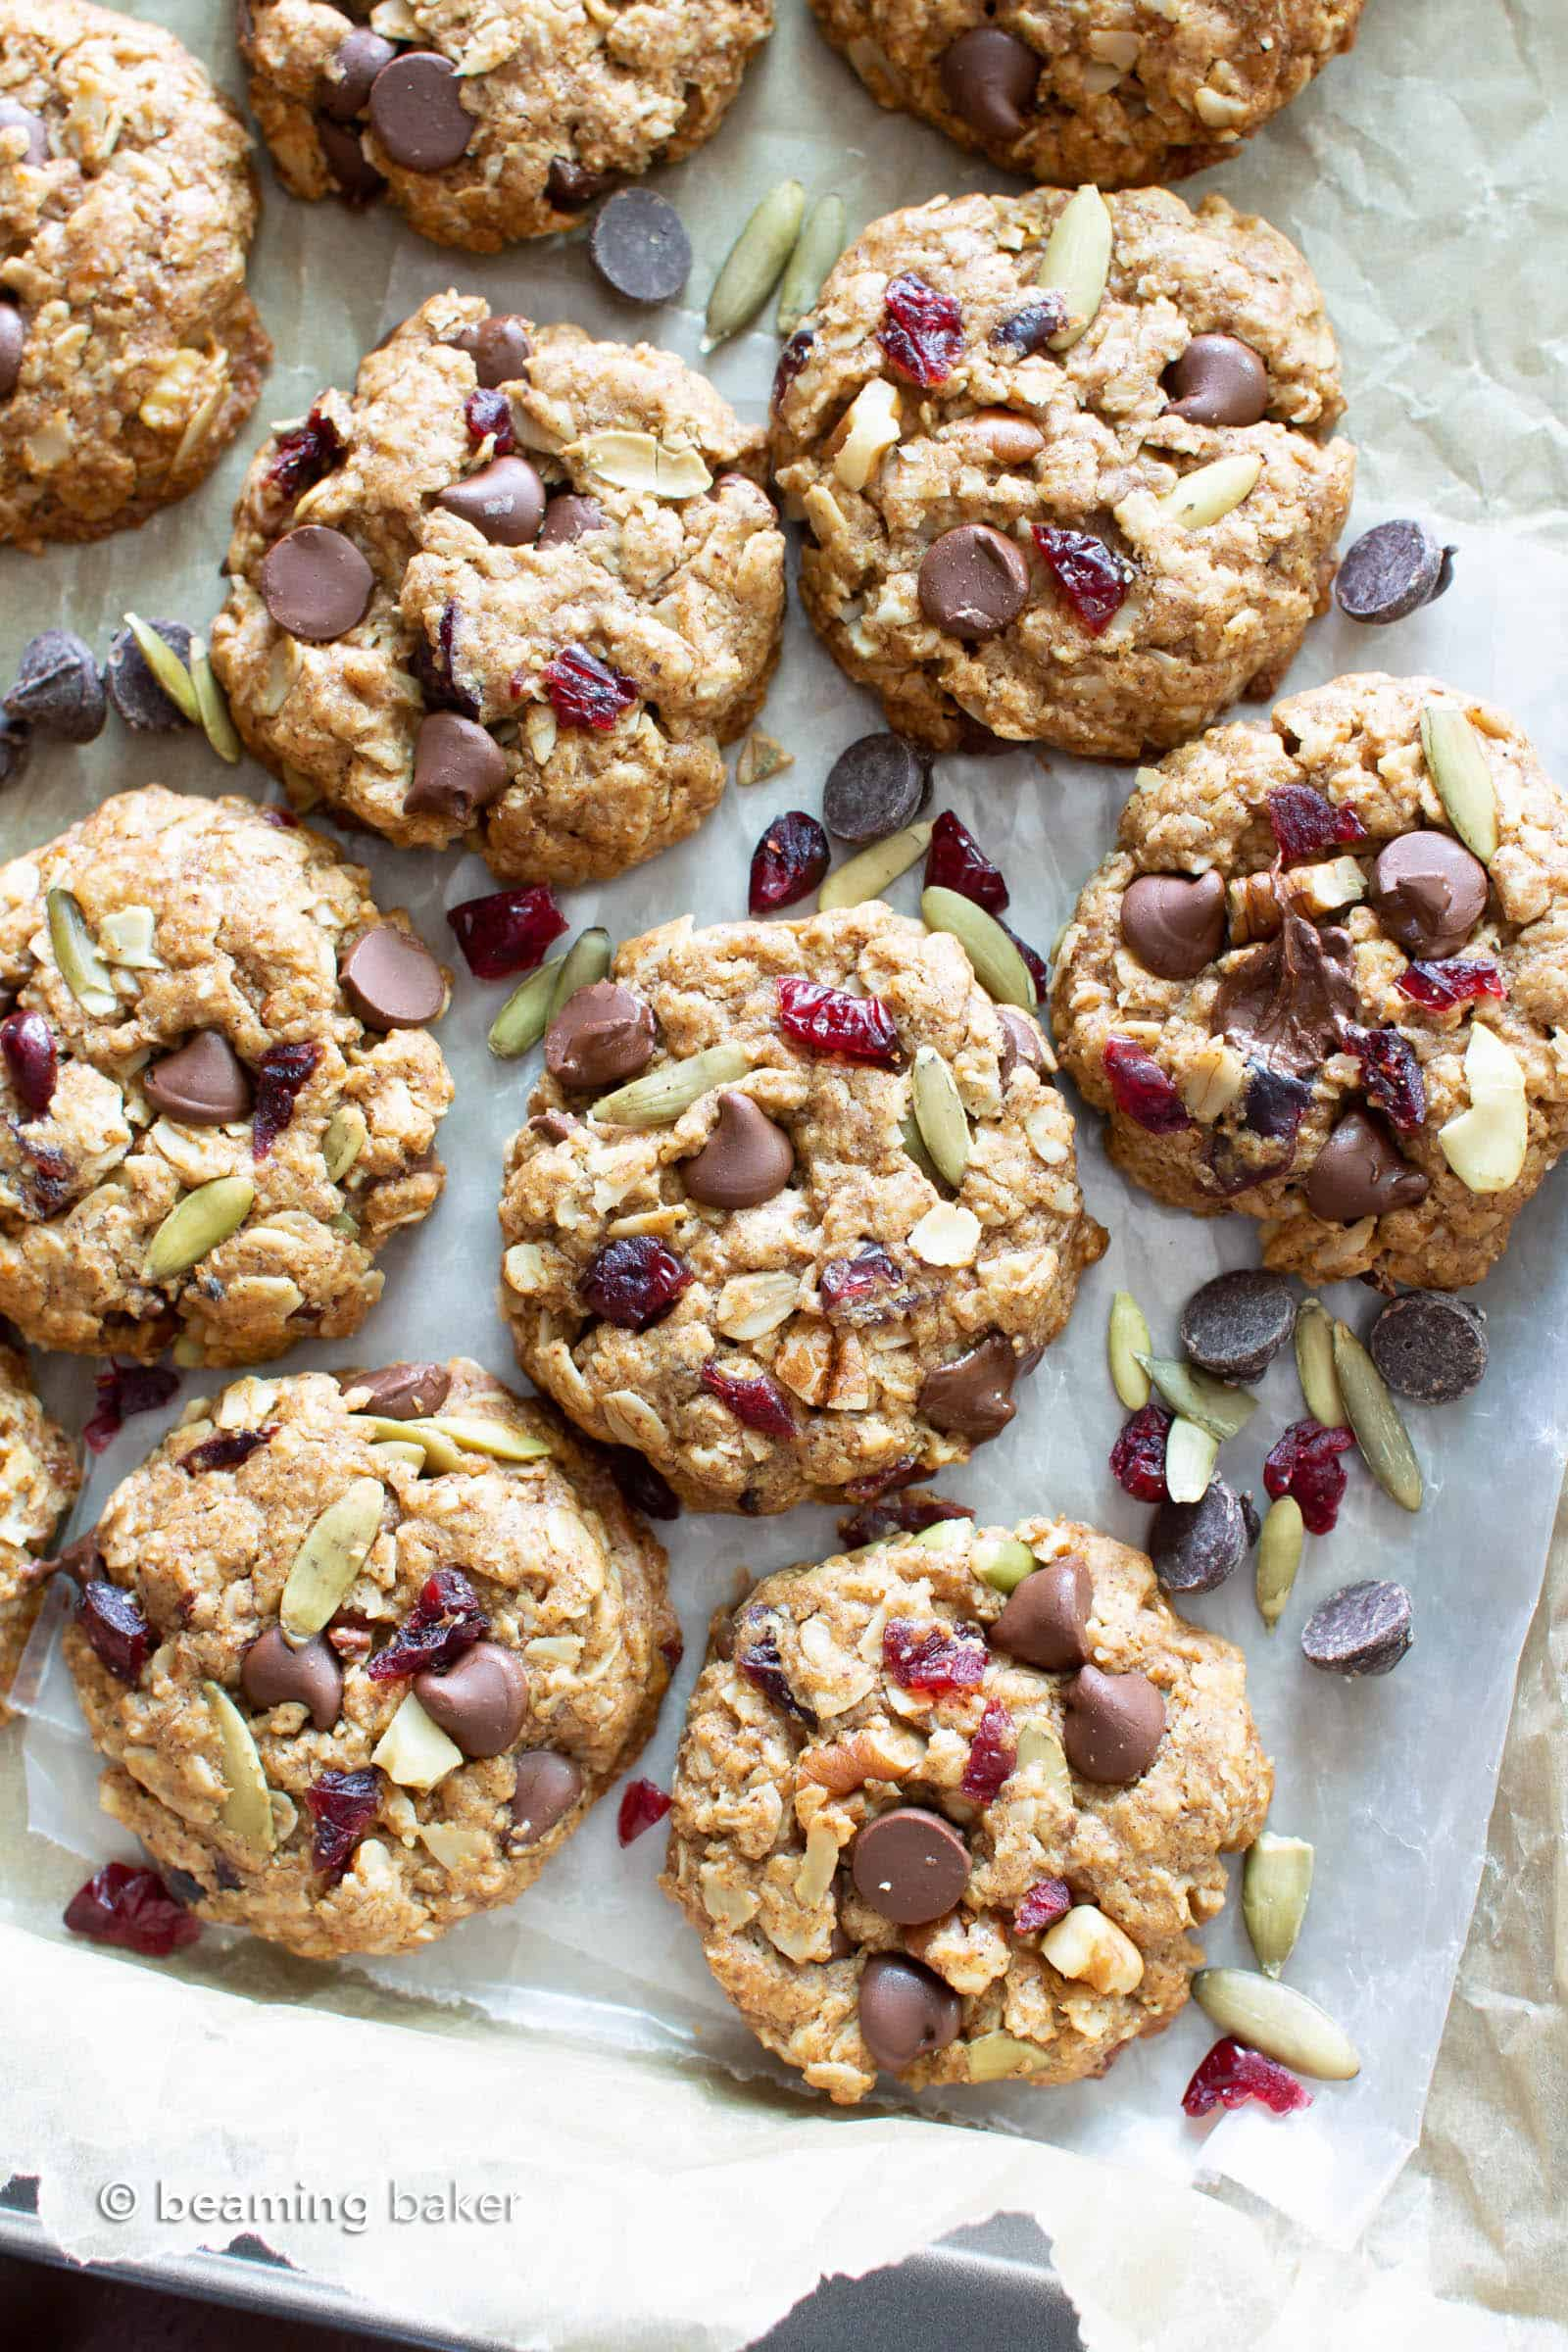 Easy Vegan Trail Mix Cookies Recipe (V, GF): learn how to make chewy vegan trail mix cookies packed with healthy fruits, nuts & seeds! The perfect homemade snack to bring with you on-the-go. Gluten Free, Dairy-Free. #Snacks #Healthy #Cookies #Vegan | Recipe at BeamingBaker.com